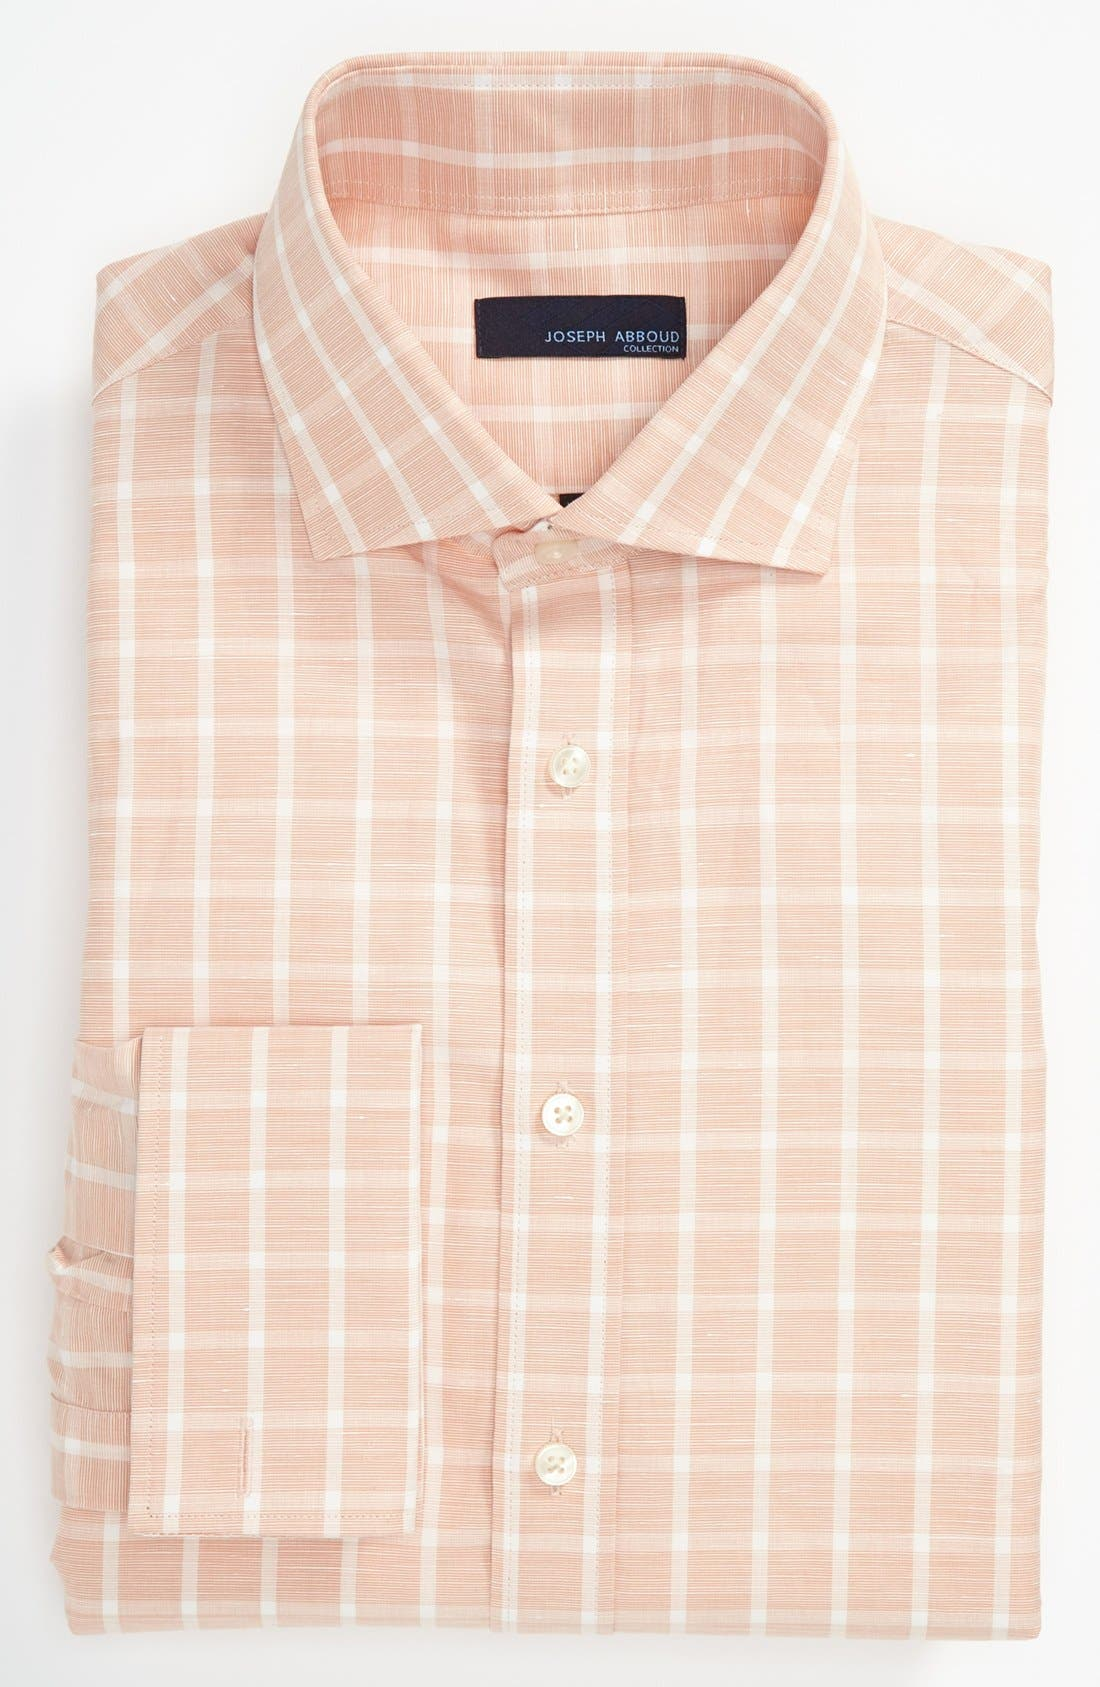 Main Image - Joseph Abboud Regular Fit Dress Shirt